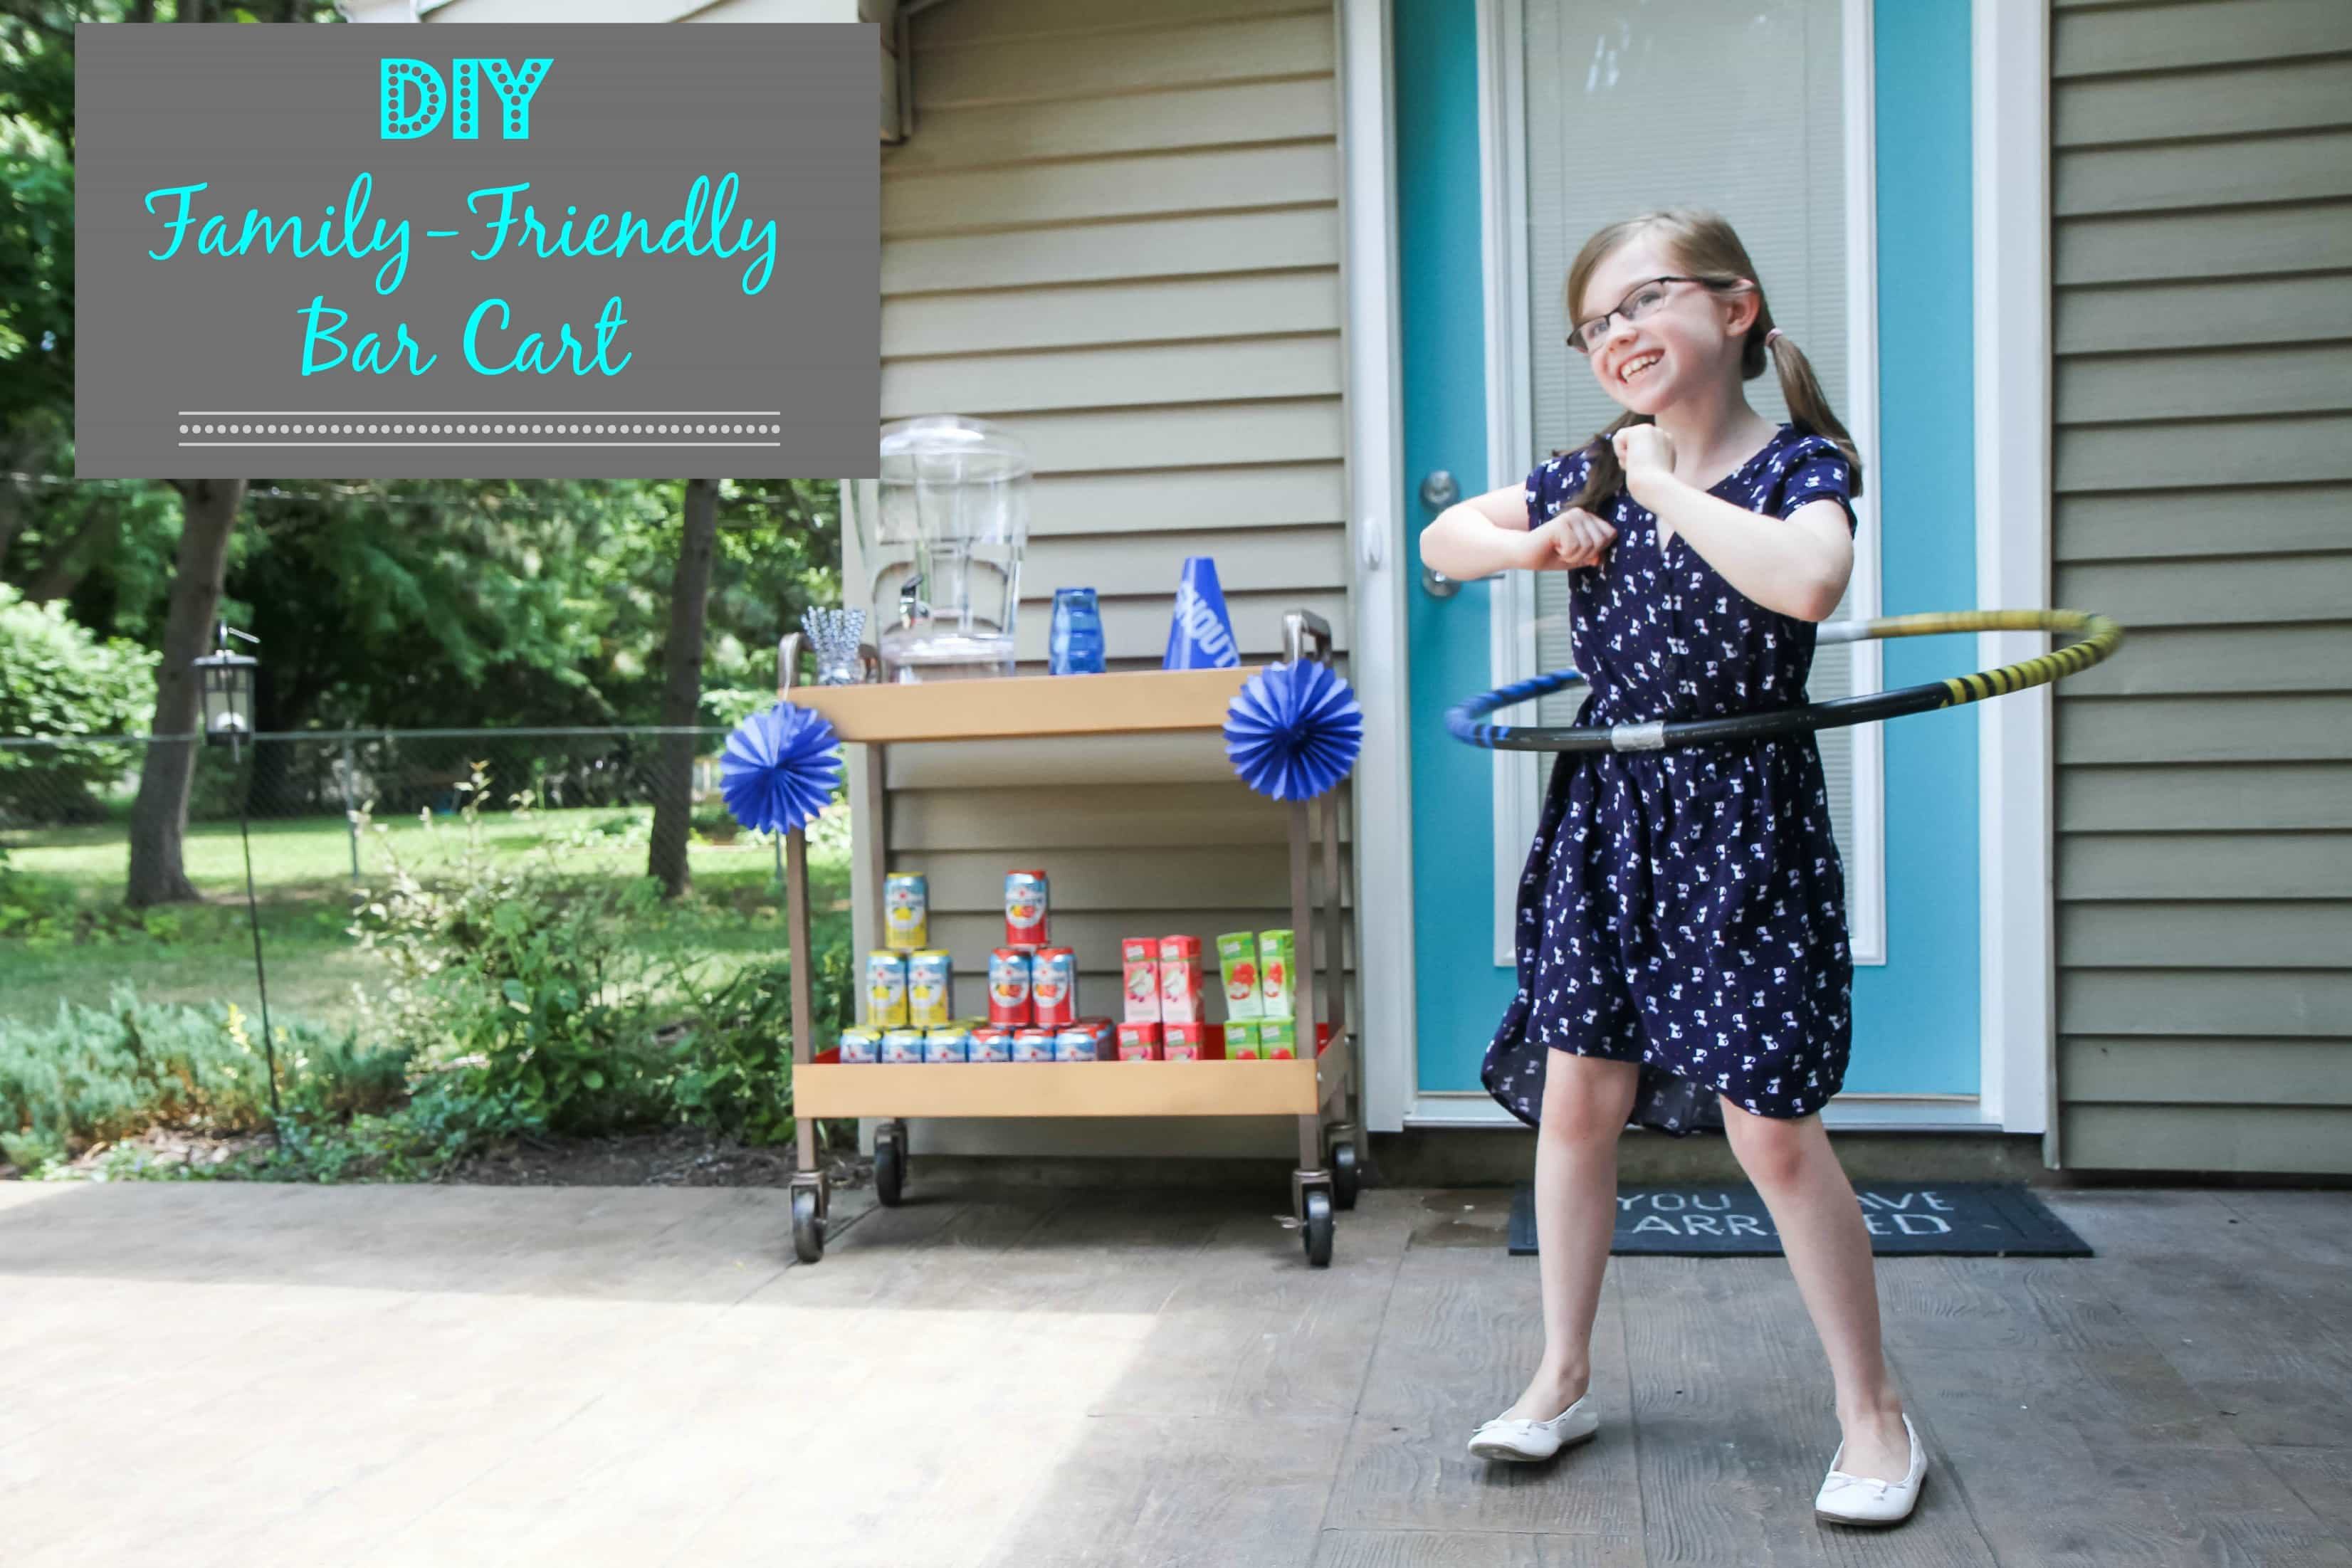 diy-family-friendly-bar-cart-header